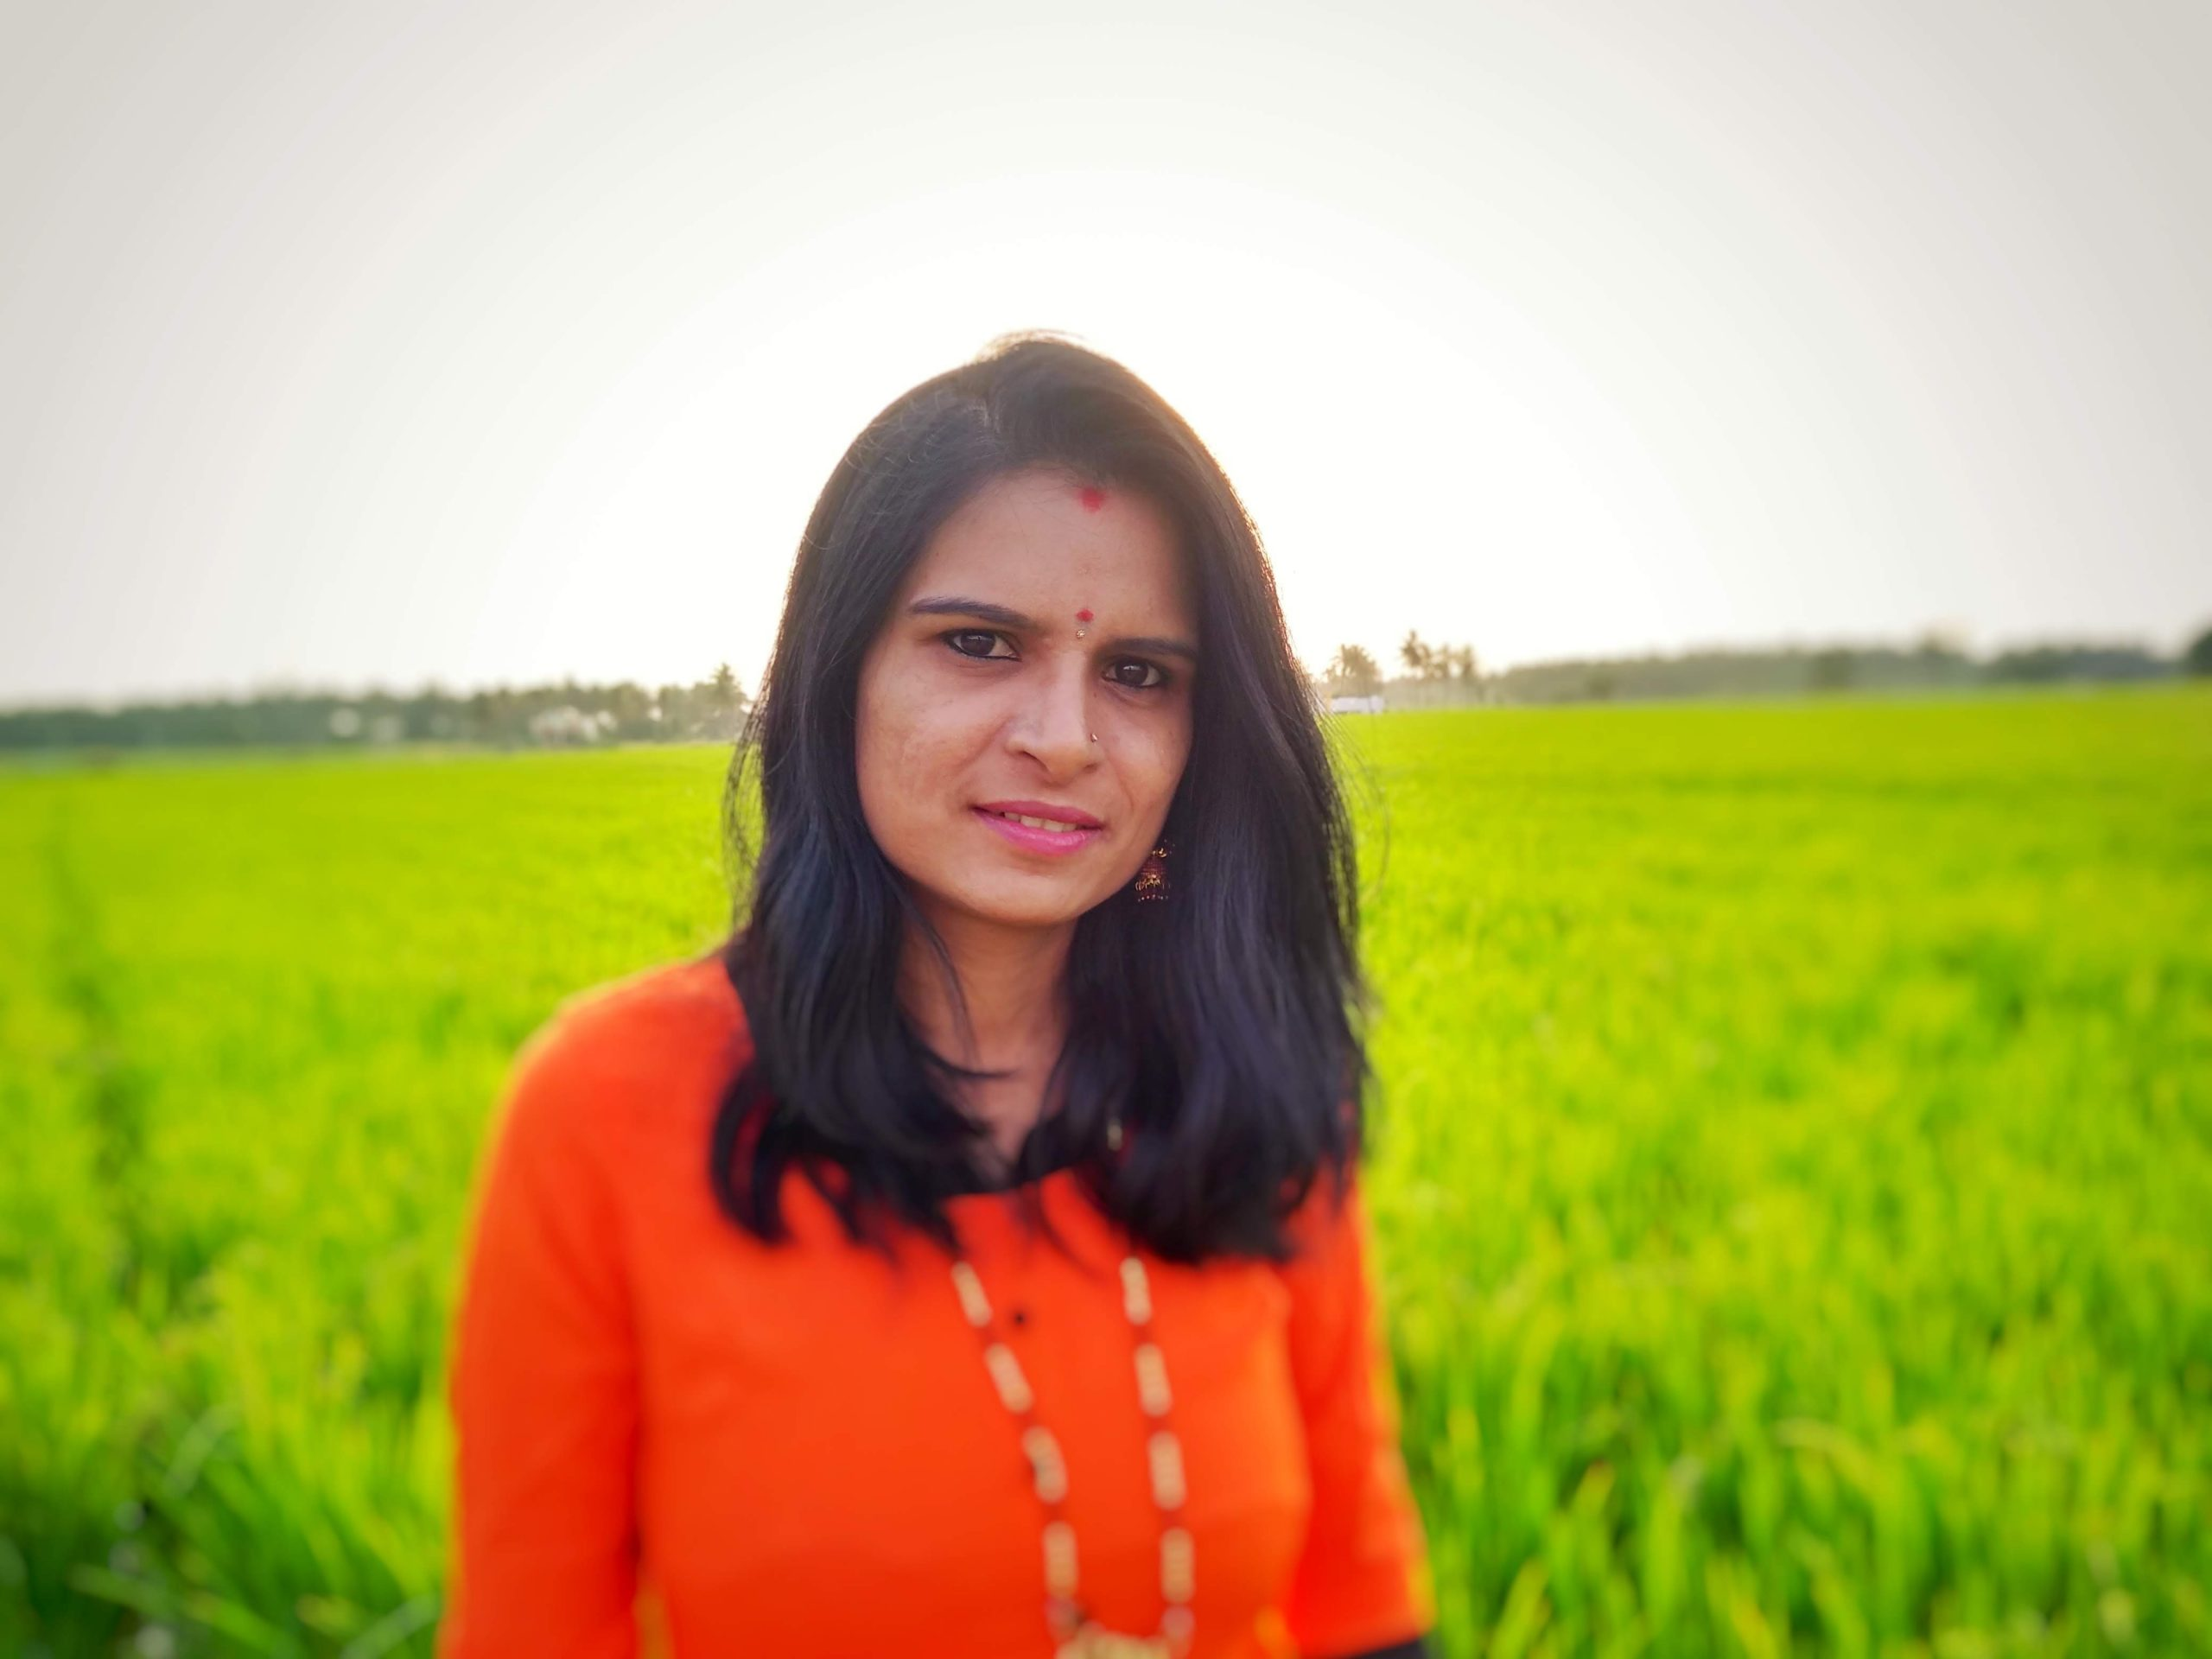 Girl posing in the crop farm